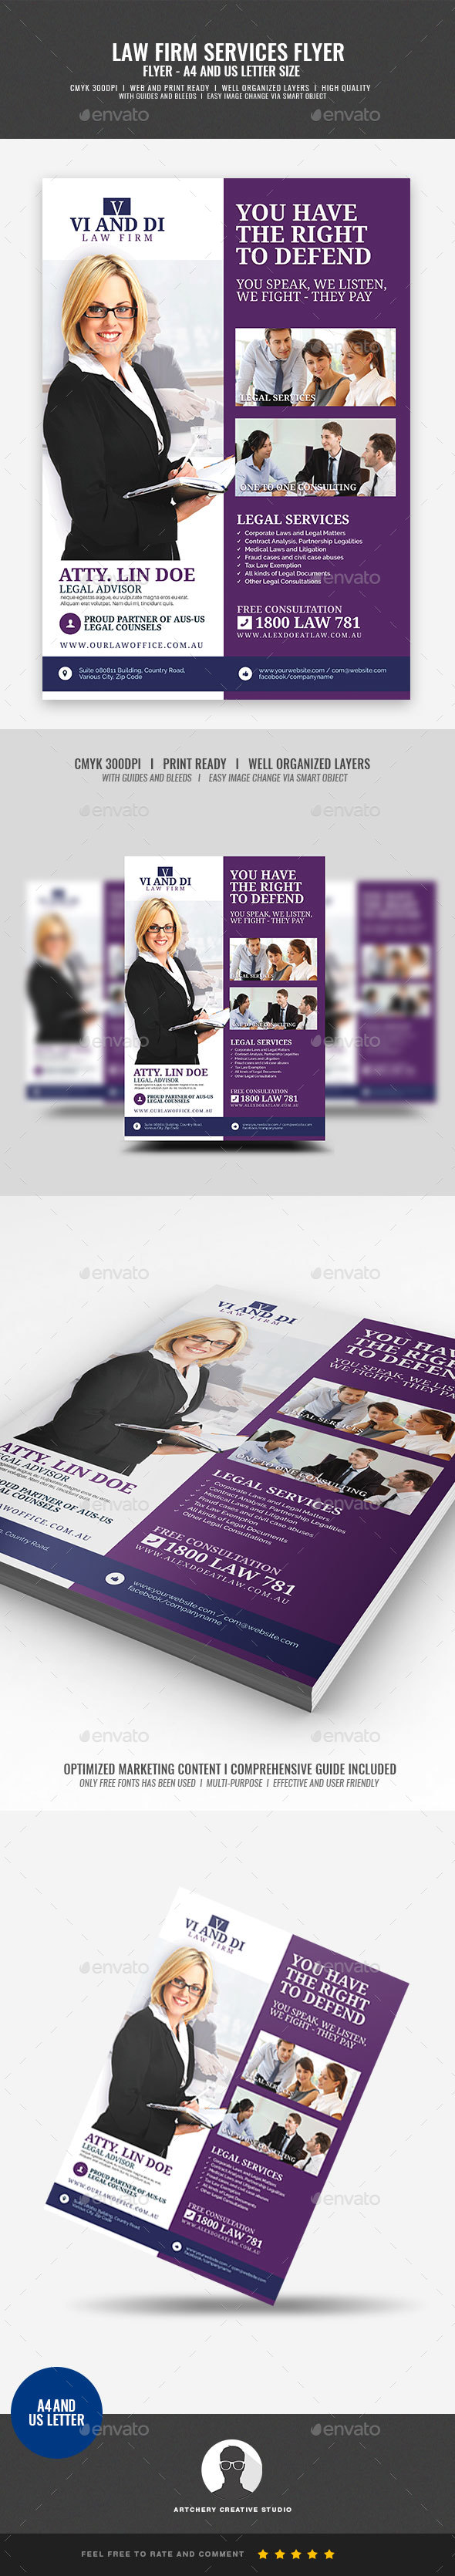 Law Firm Promotional Flyer - Corporate Flyers